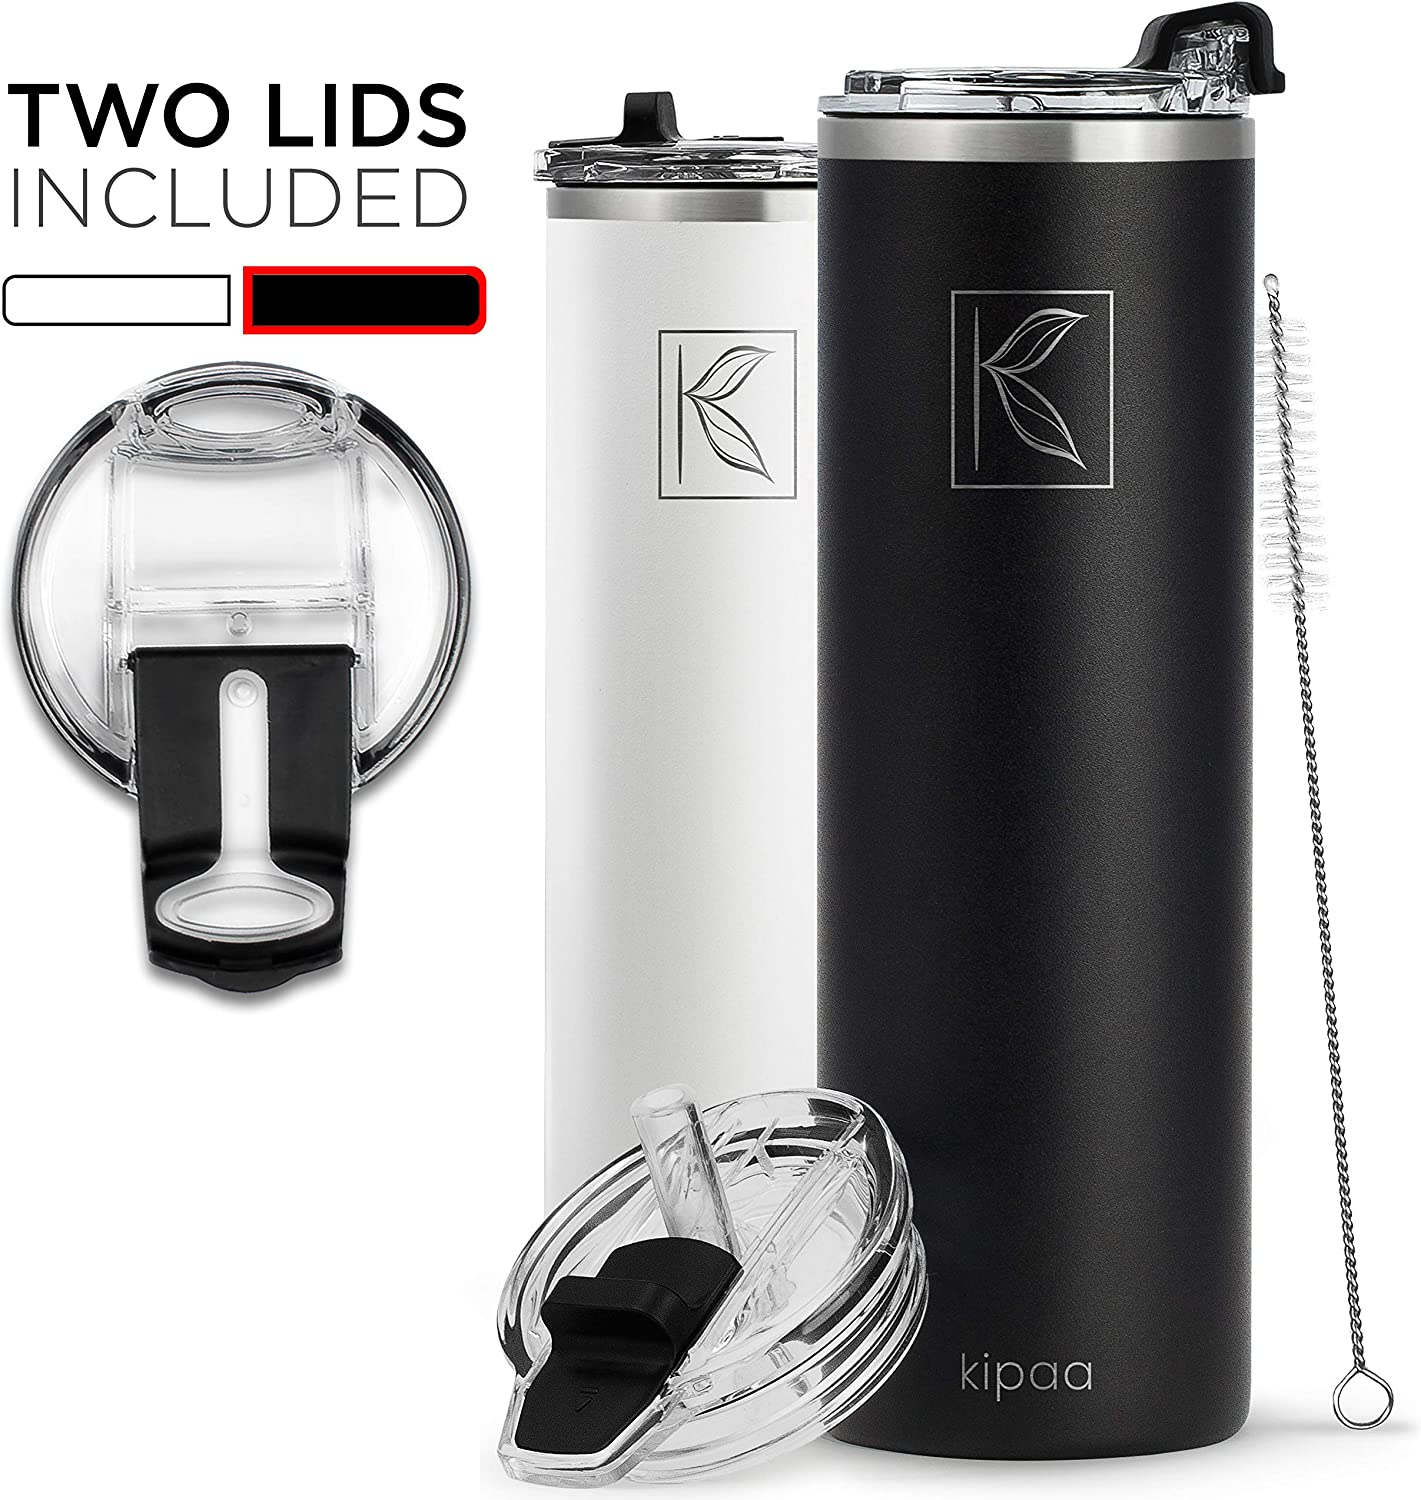 Kipaa Double Wall Insulated Vacuum Stainless Steel Skinny Tumbler - with 2 Lids, Straw, Cleaning Brush - Slim Bottle, Coffee Cup for Hot Cold Drink - Dishwasher Safe, Eco-Friendly, 18 Ounce, Black